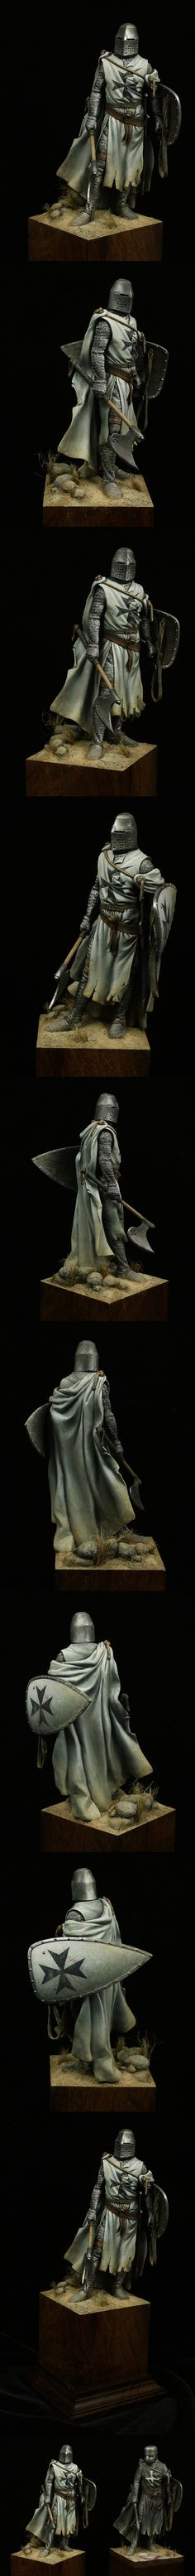 The Internet's largest gallery of painted miniatures, with a large repository of how-to articles on miniature painting Knight In Shining Armor, Knight Armor, Medieval Life, Medieval Knight, Fantasy Miniatures, Fantasy Armor, Knights Templar, Figure Model, Dark Ages